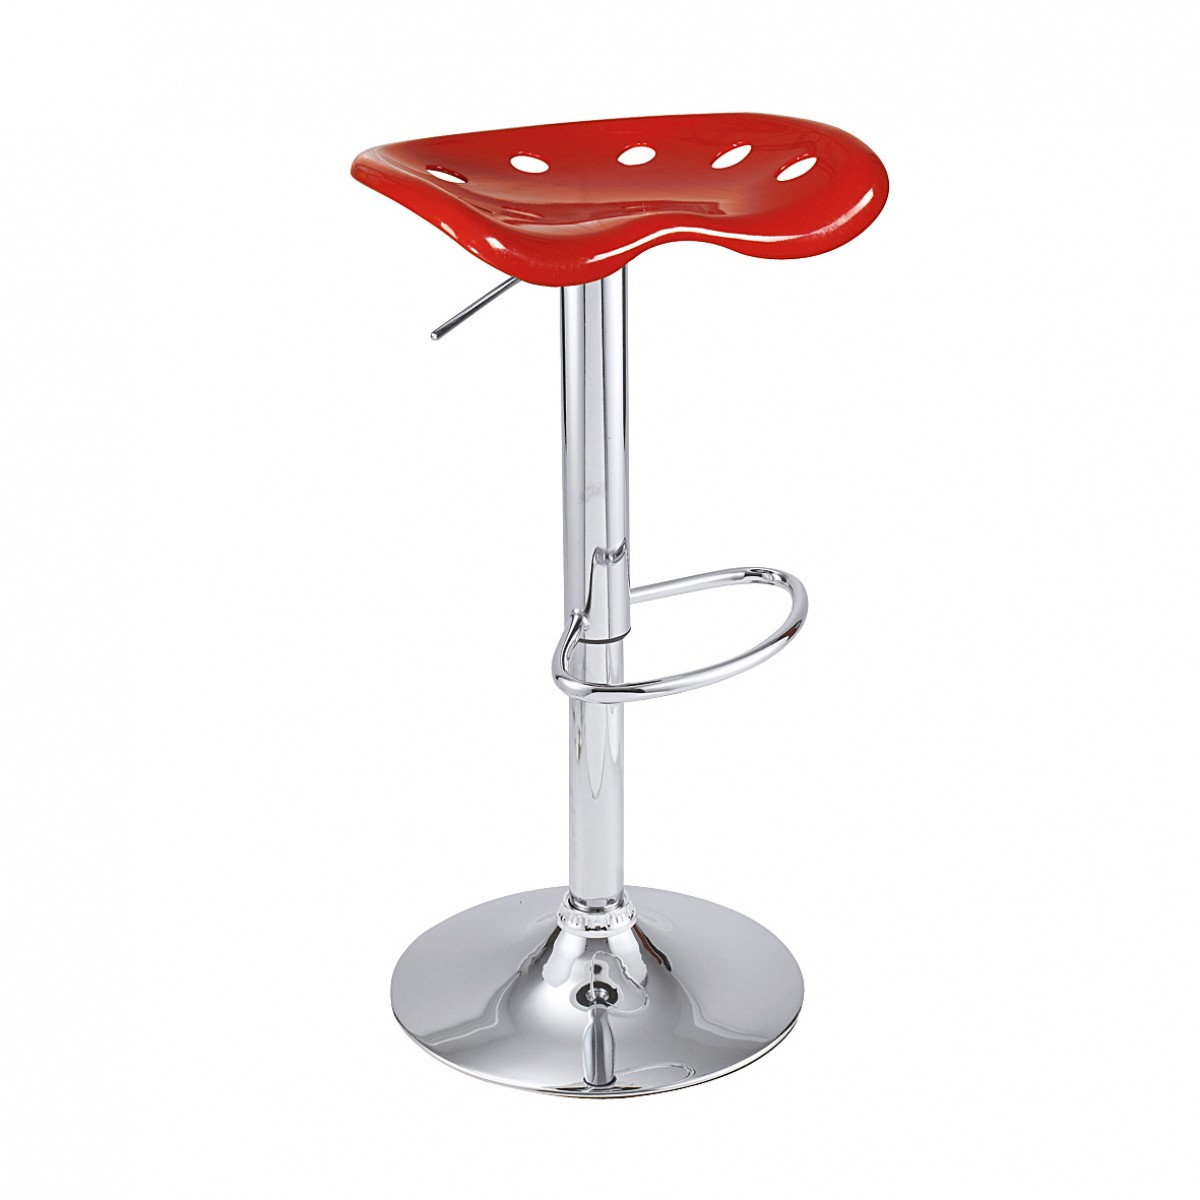 Tabouret de bar claudia rouge lot de 2 mooviin for Tabouret bar couleur